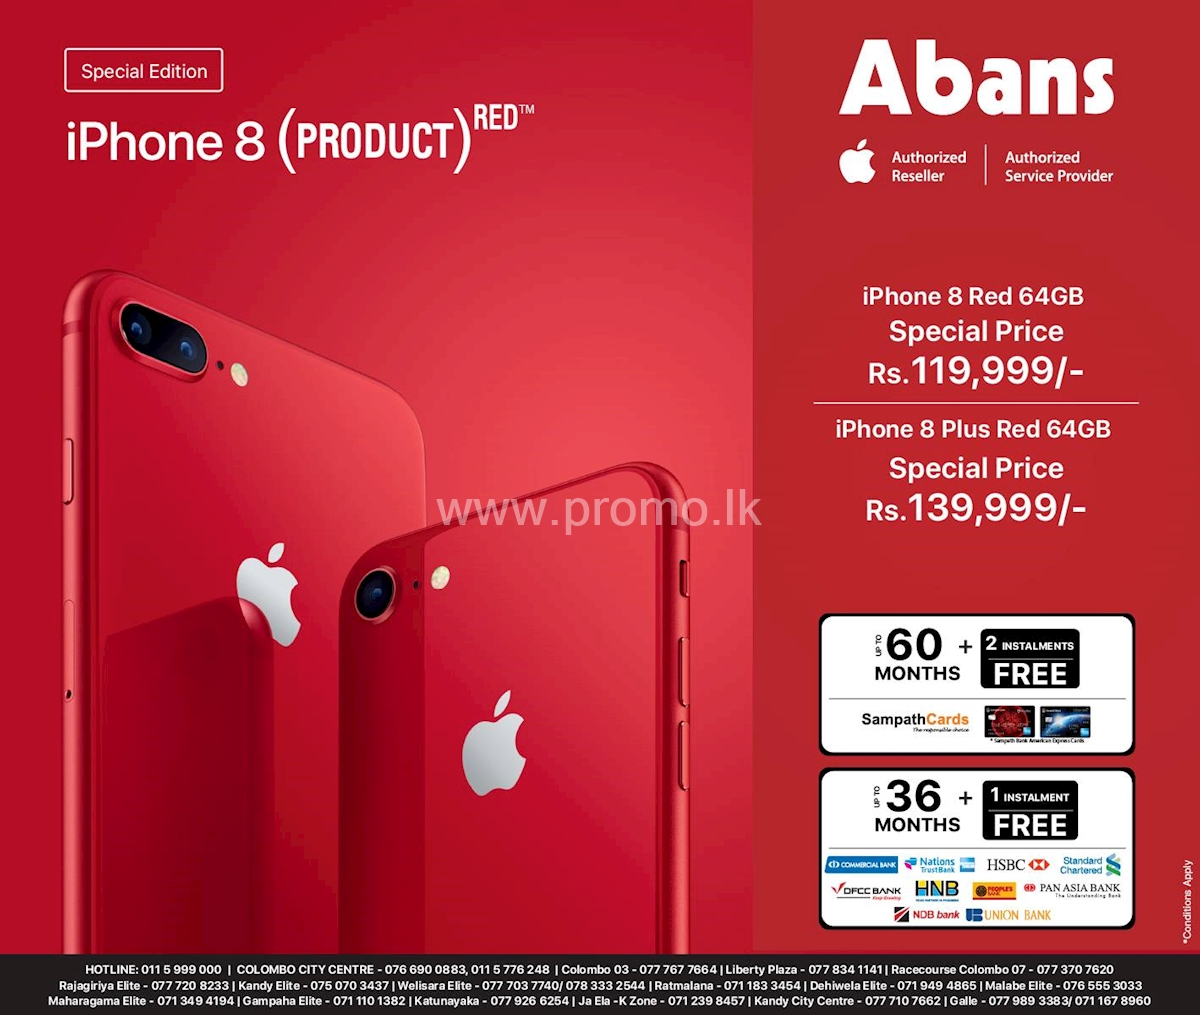 Grab your iPhone 8 and 8 plus Red at special price from Abans